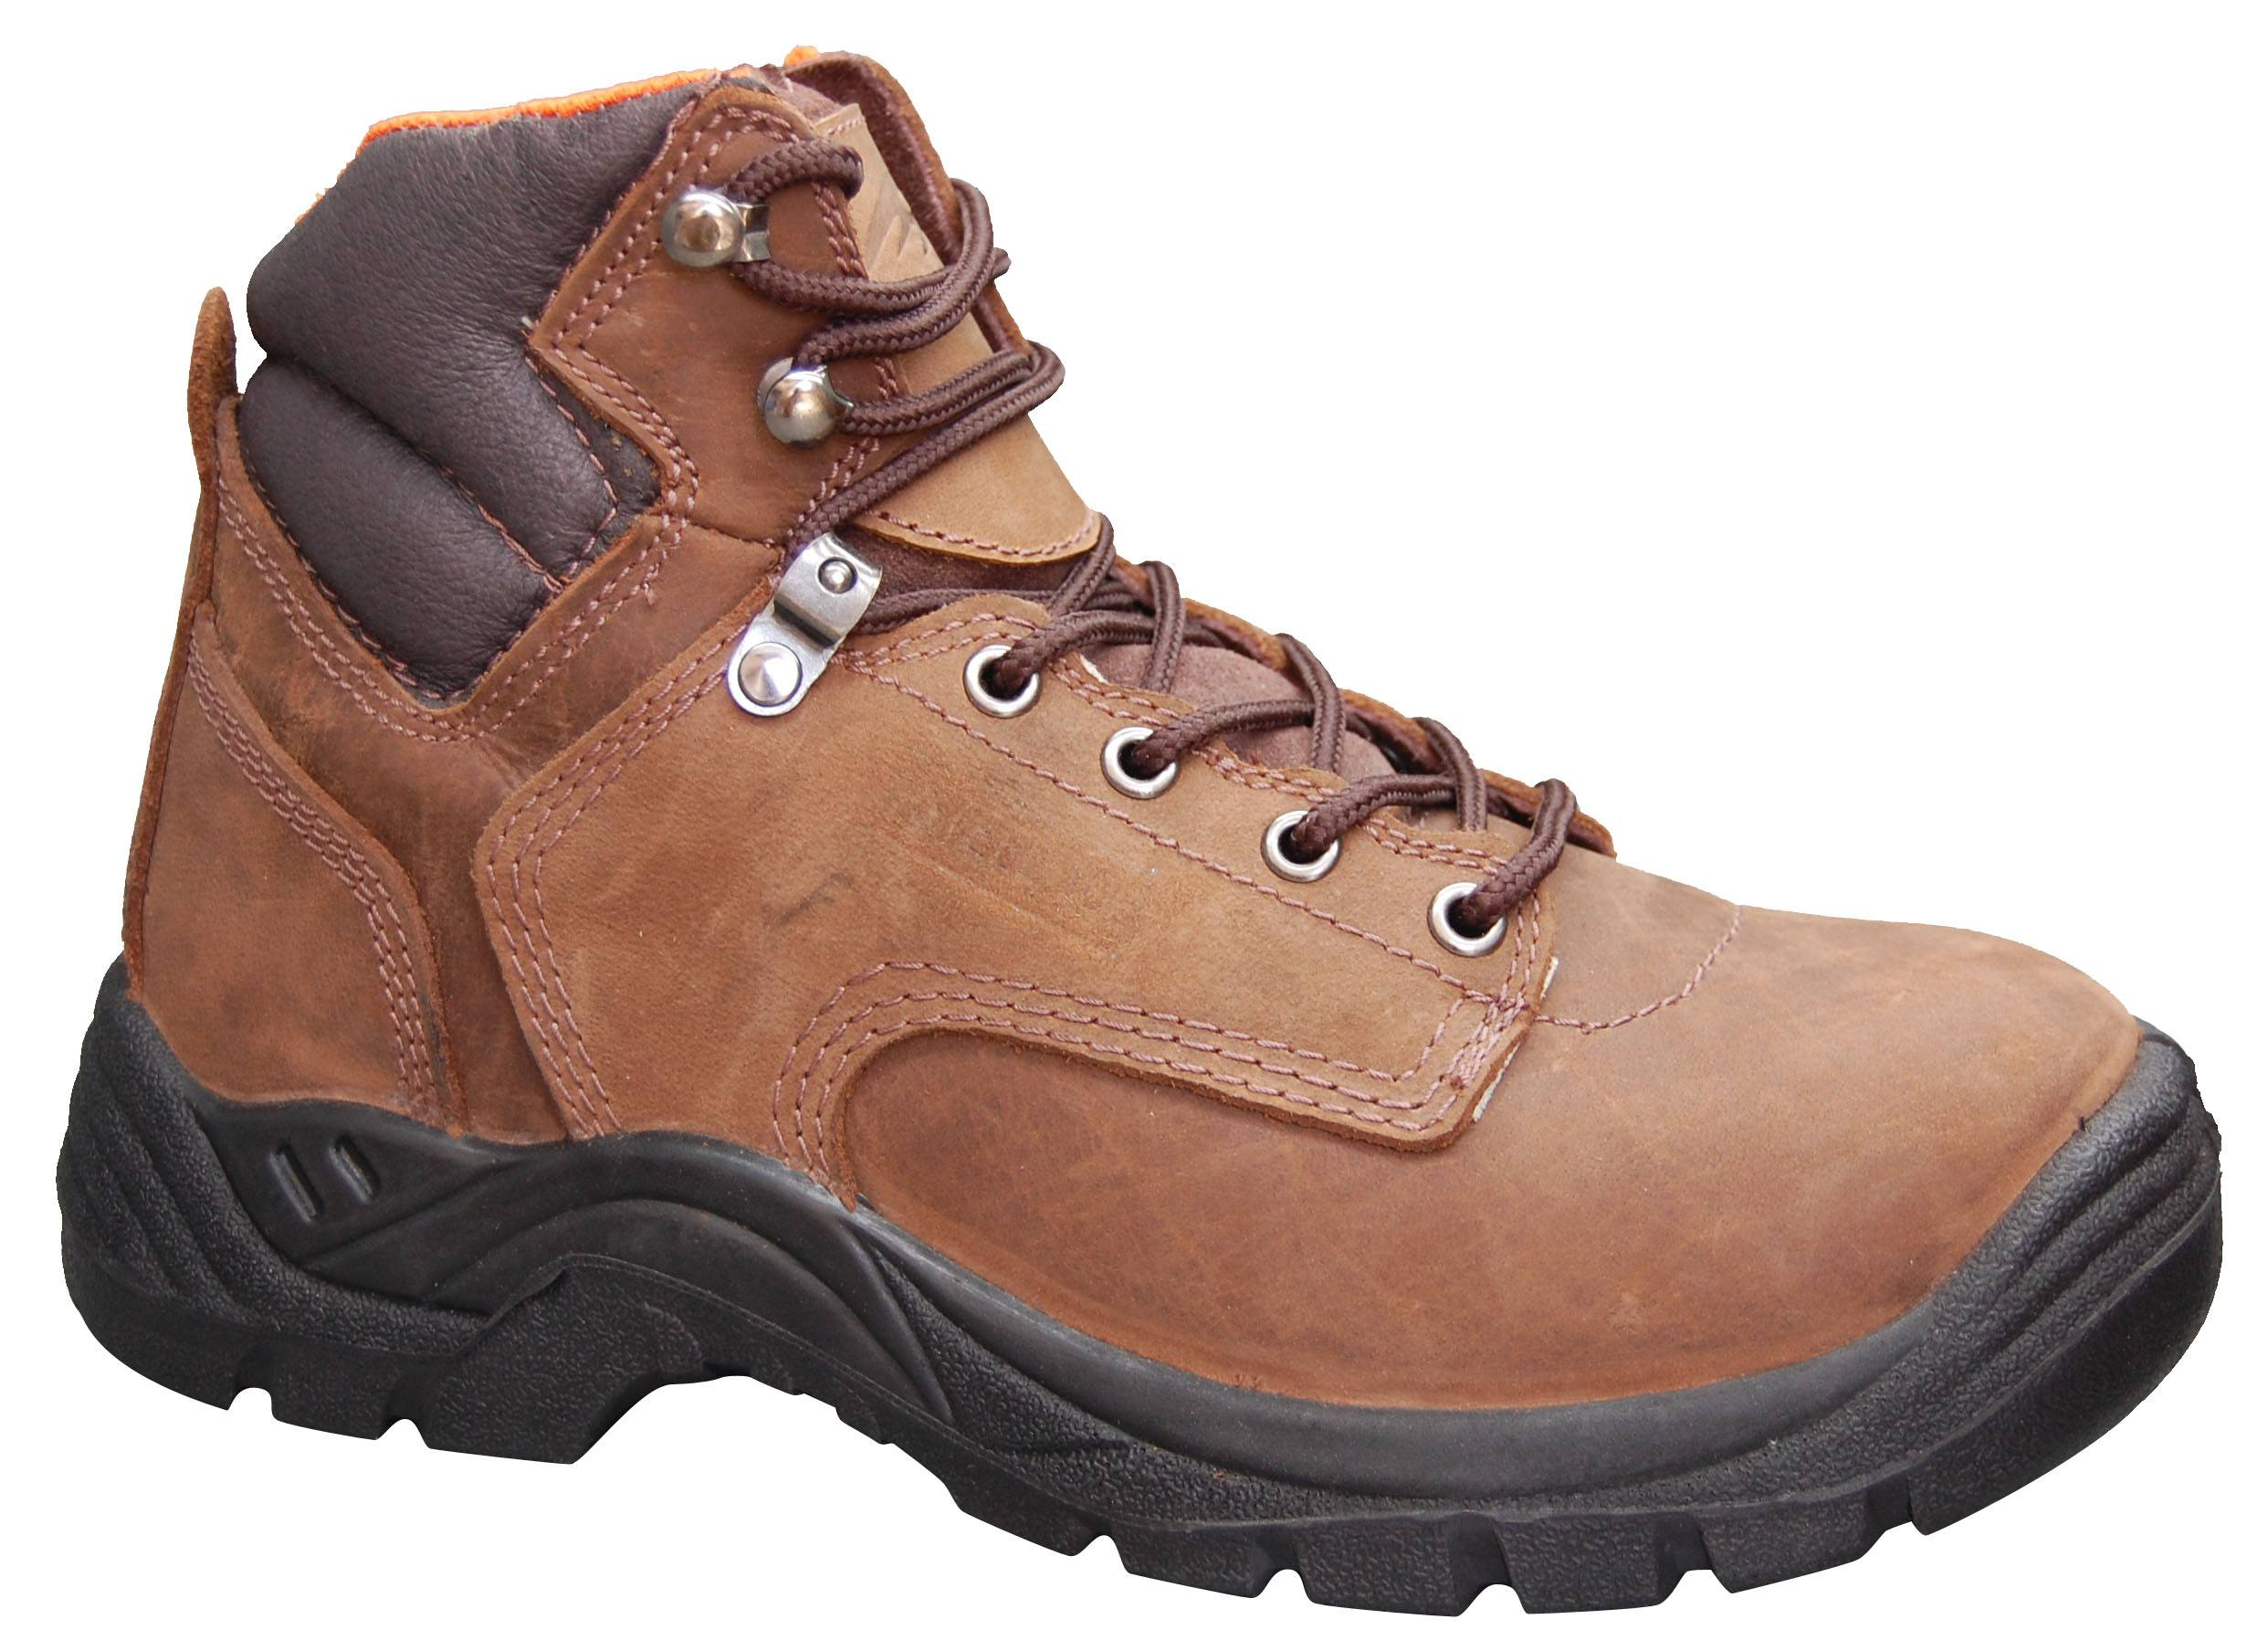 toe protection safety shoes(boots),working shoes,construction shoes